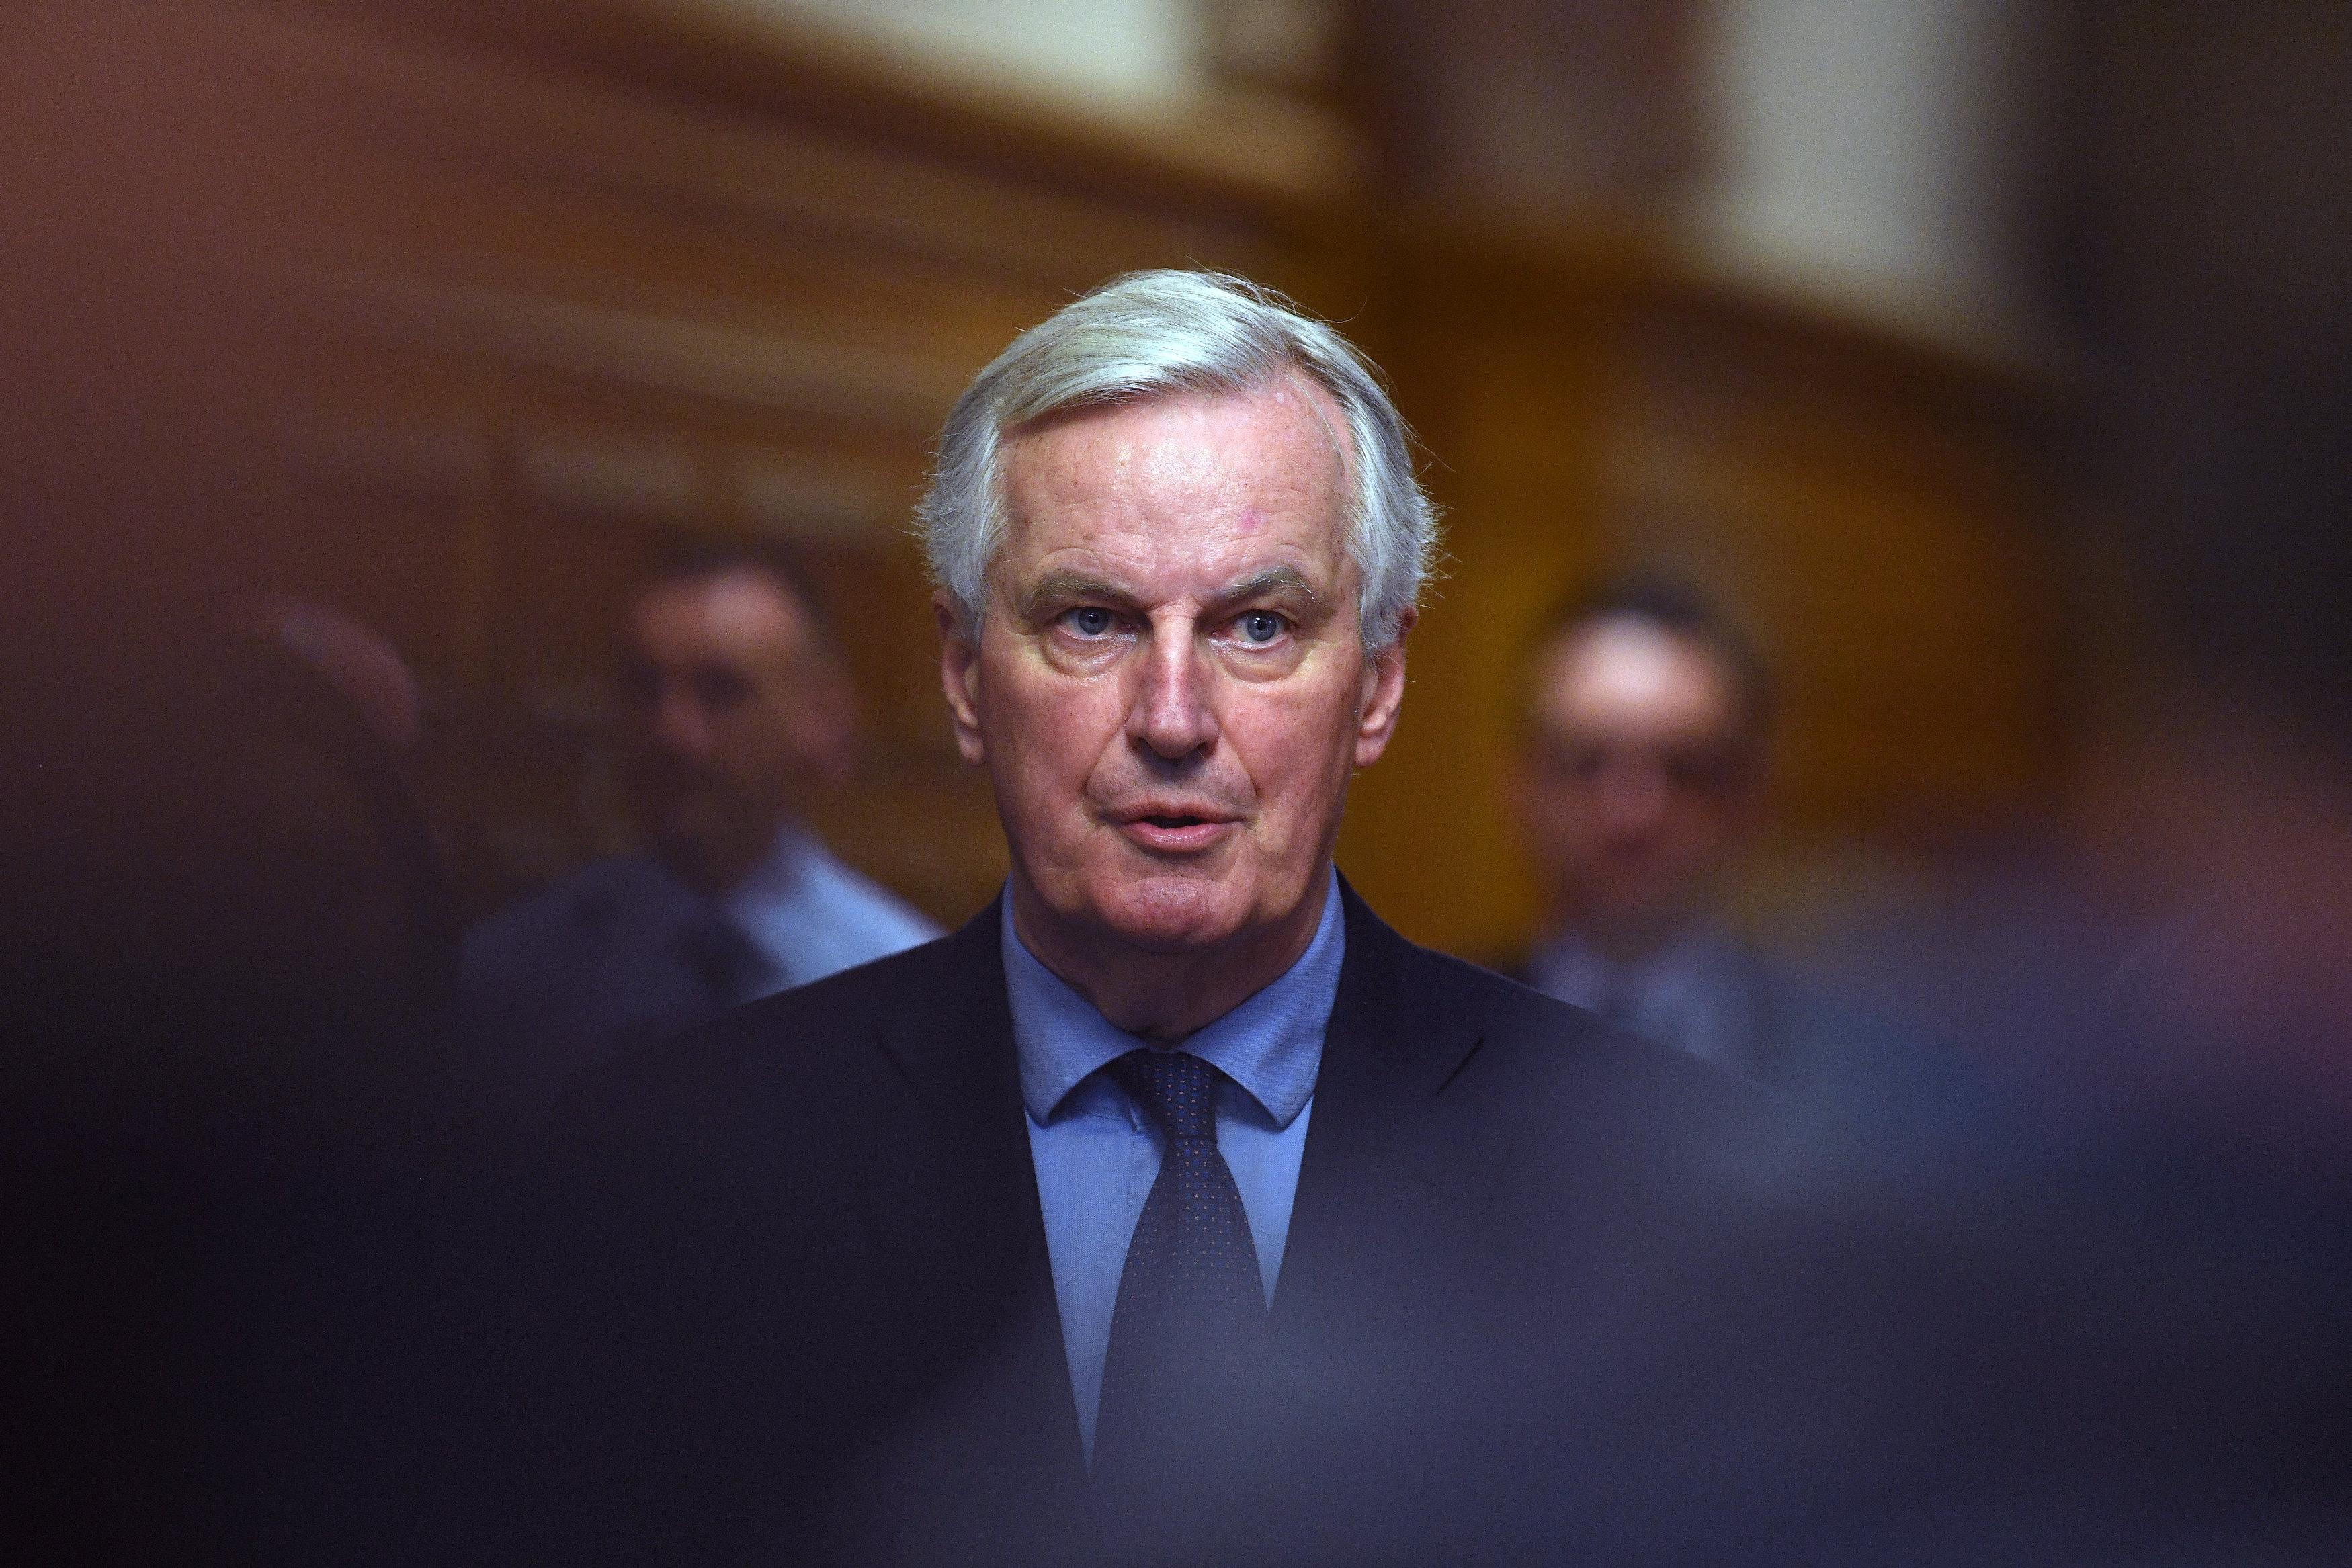 'Respect your own red lines' Barnier tells 'paradoxical' UK ministers